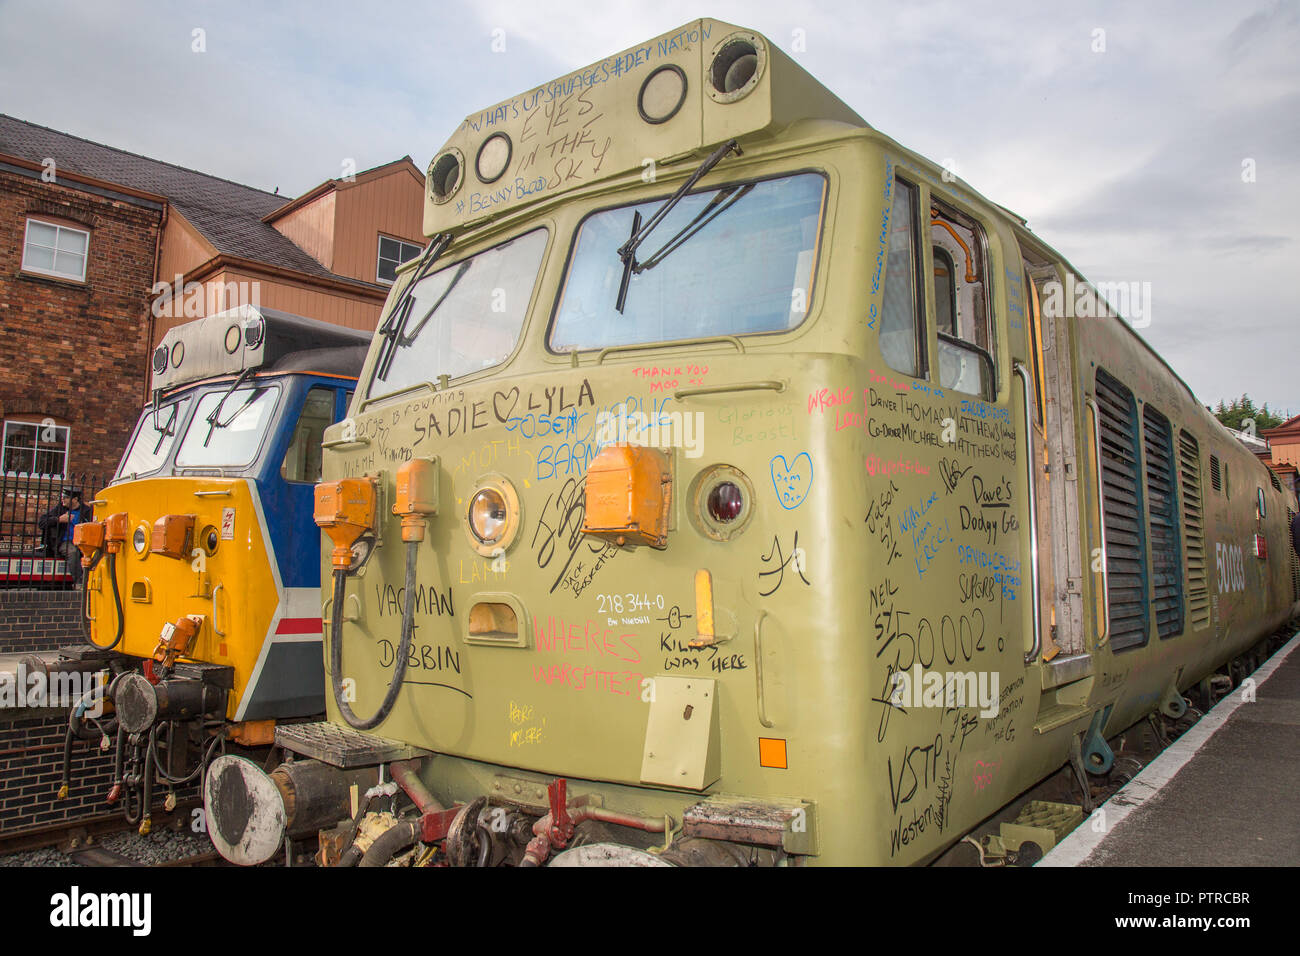 Diesel Class 50 Golden Jubilee celebrations at Severn Valley Railway. Enthusiasts graffiti messages on 50033 Glorious & donate towards her repainting. - Stock Image